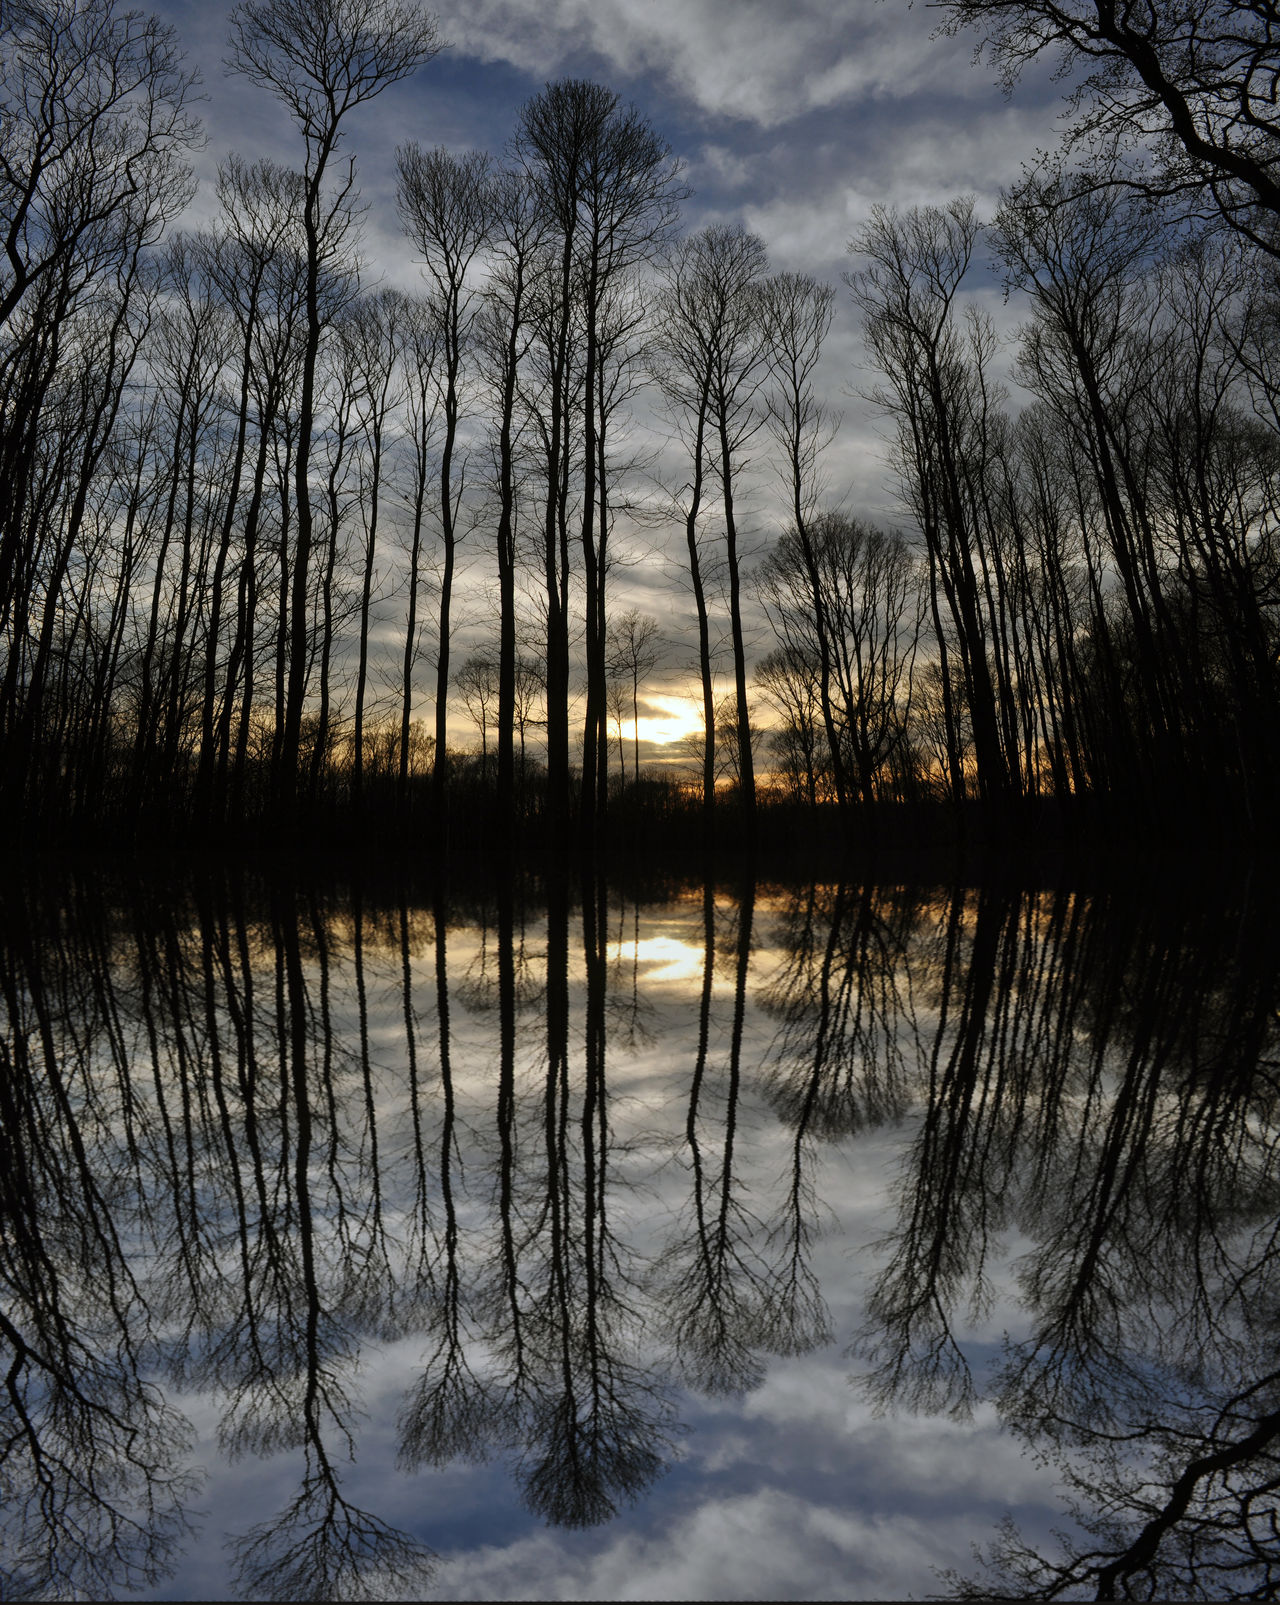 sunset reflection Forest Forest Photography Forest Trees Reflection Reflection In The Water Reflection Lake Reflection Photography Reflections In The Water